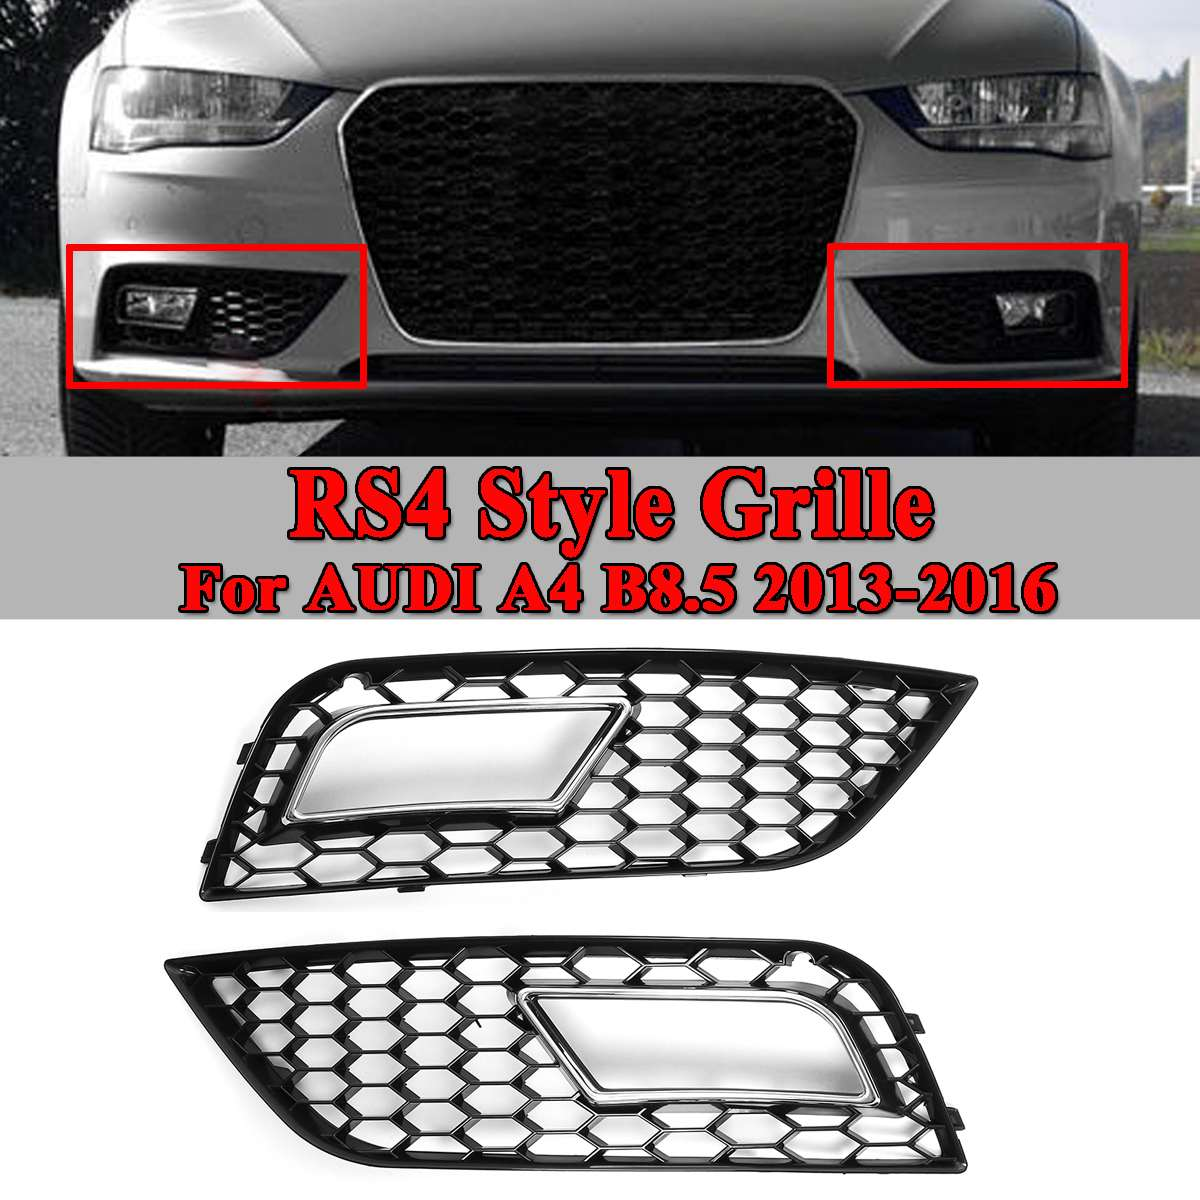 2x Car Bumper Fog Light Lamp Cover Honeycomb Hex Front Racing Grille Grill For Audi A4 B8.5 2013-2016 RS4 Style Chrome/Black grille